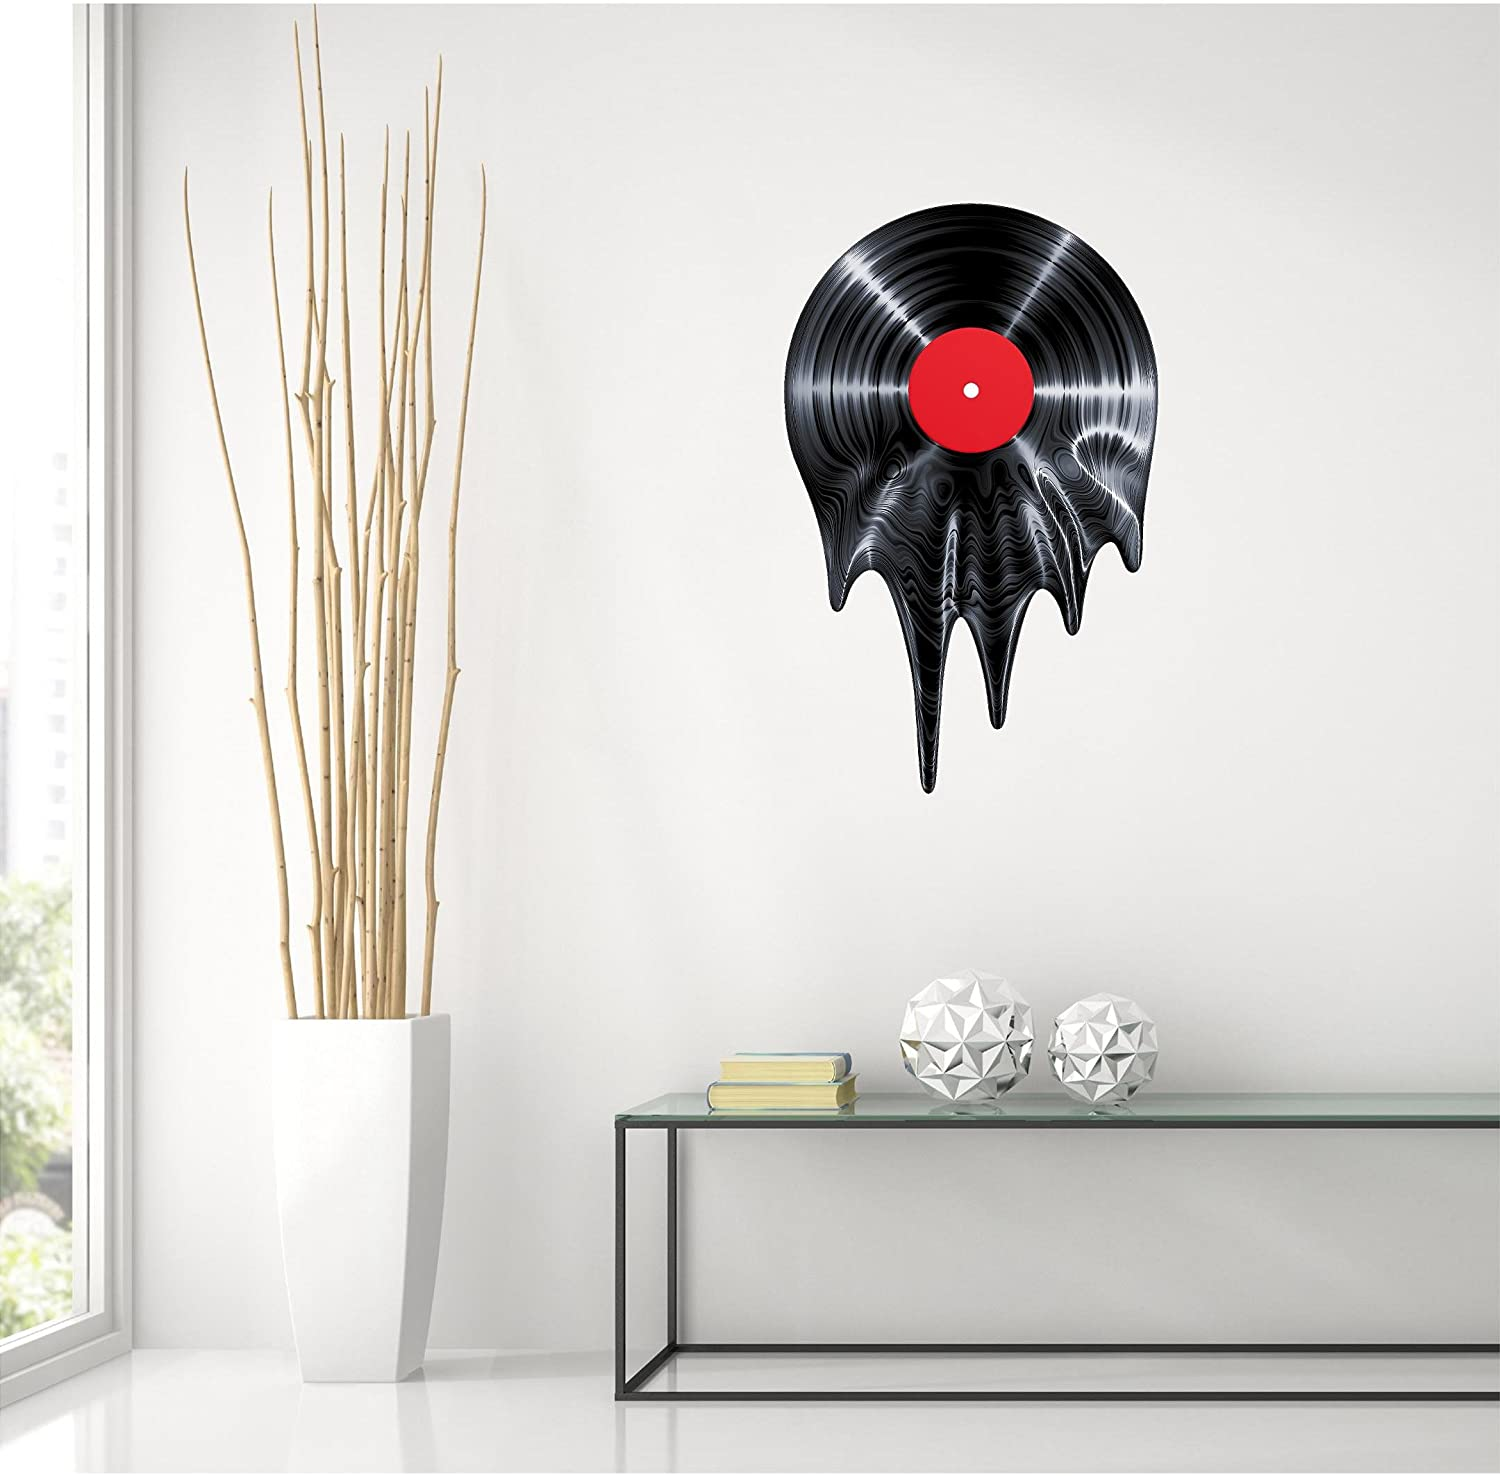 """24"""" Melting Record Wall Decal Vinyl Graphic 50's 60's 70's Music Tunes Radio Home Kids Room Man Cave Teen Bedroom Living Room Office Art Decor NEW"""